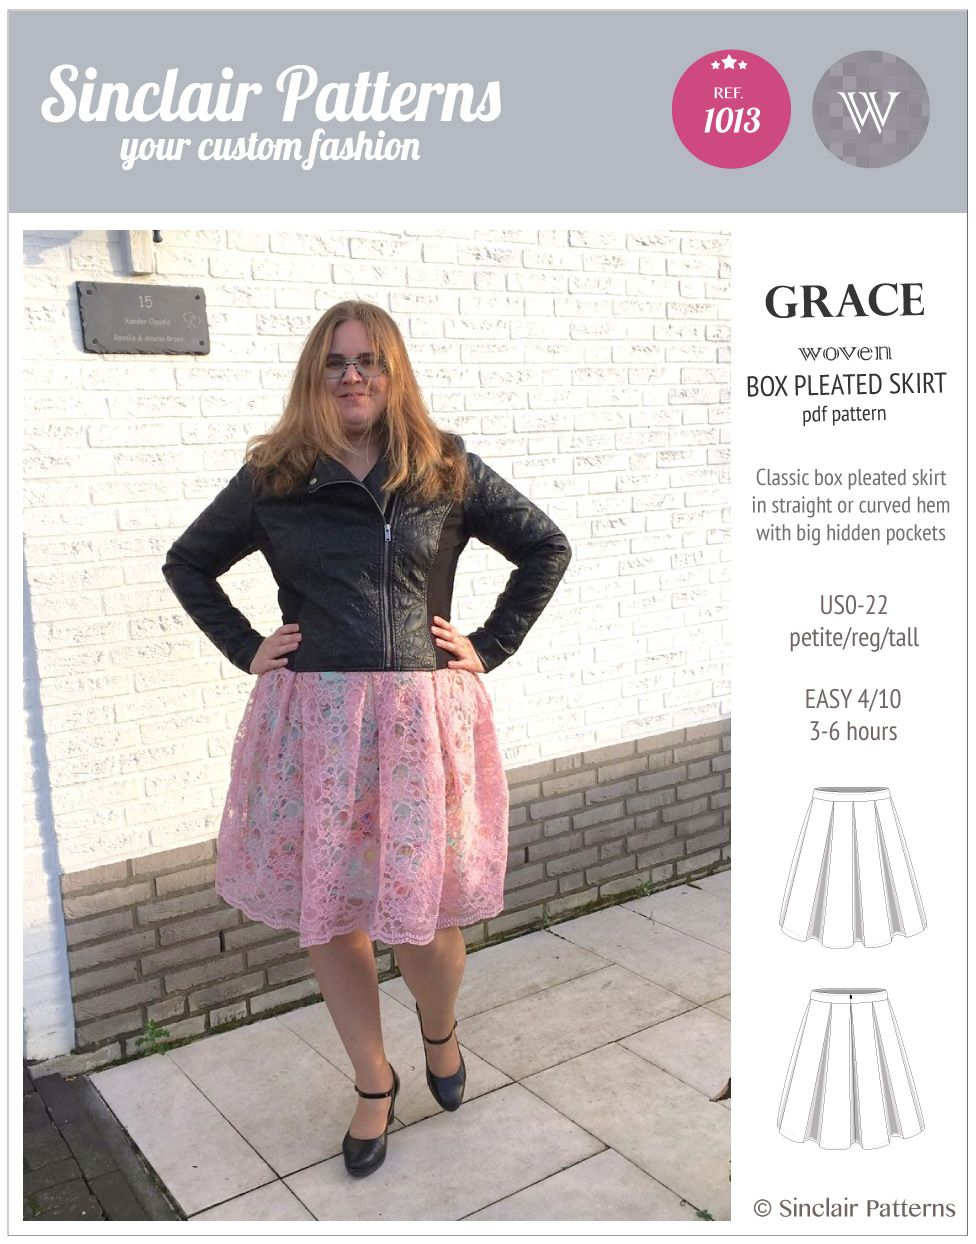 Grace Box Pleated Lined Woven Skirt With Pockets Pdf Skirts With Pockets Skirts Versatile Skirt